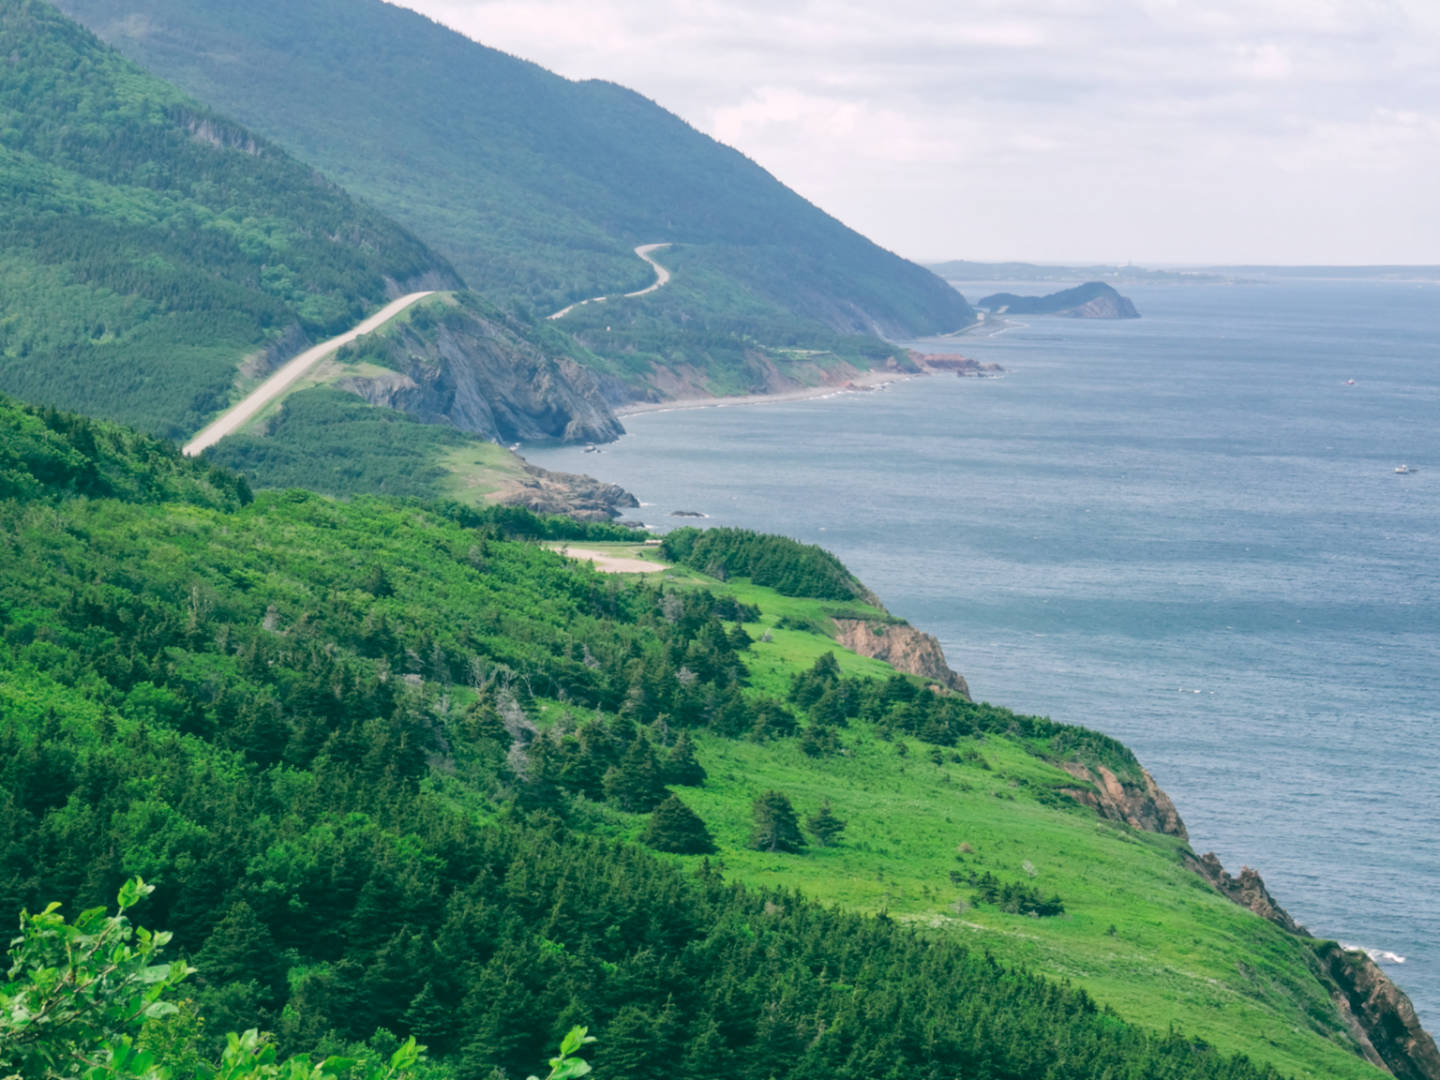 A photo of the Cabot Trail in the Cape Breton Highlands